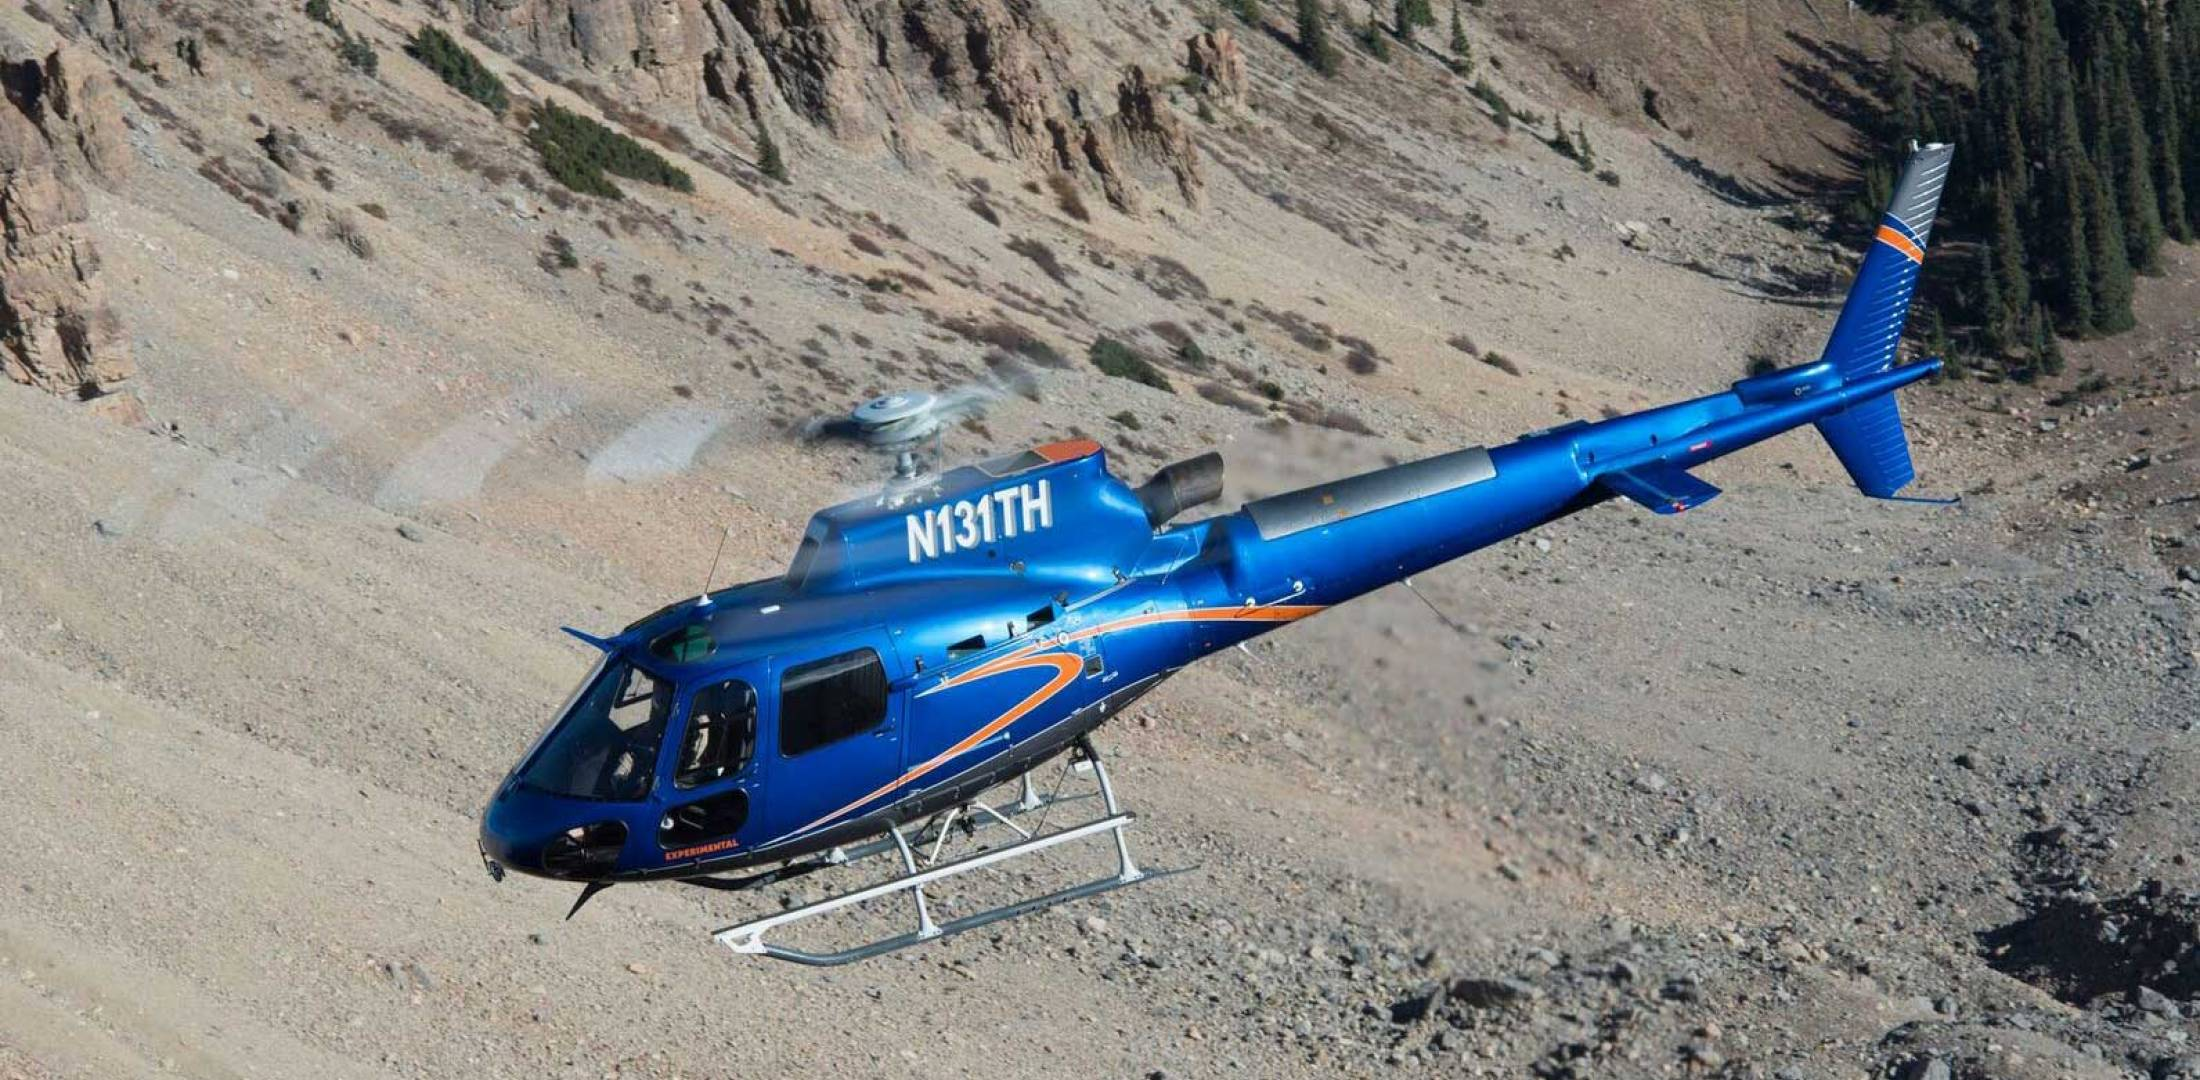 BLR Aerospace's FastFin as installed on the H125